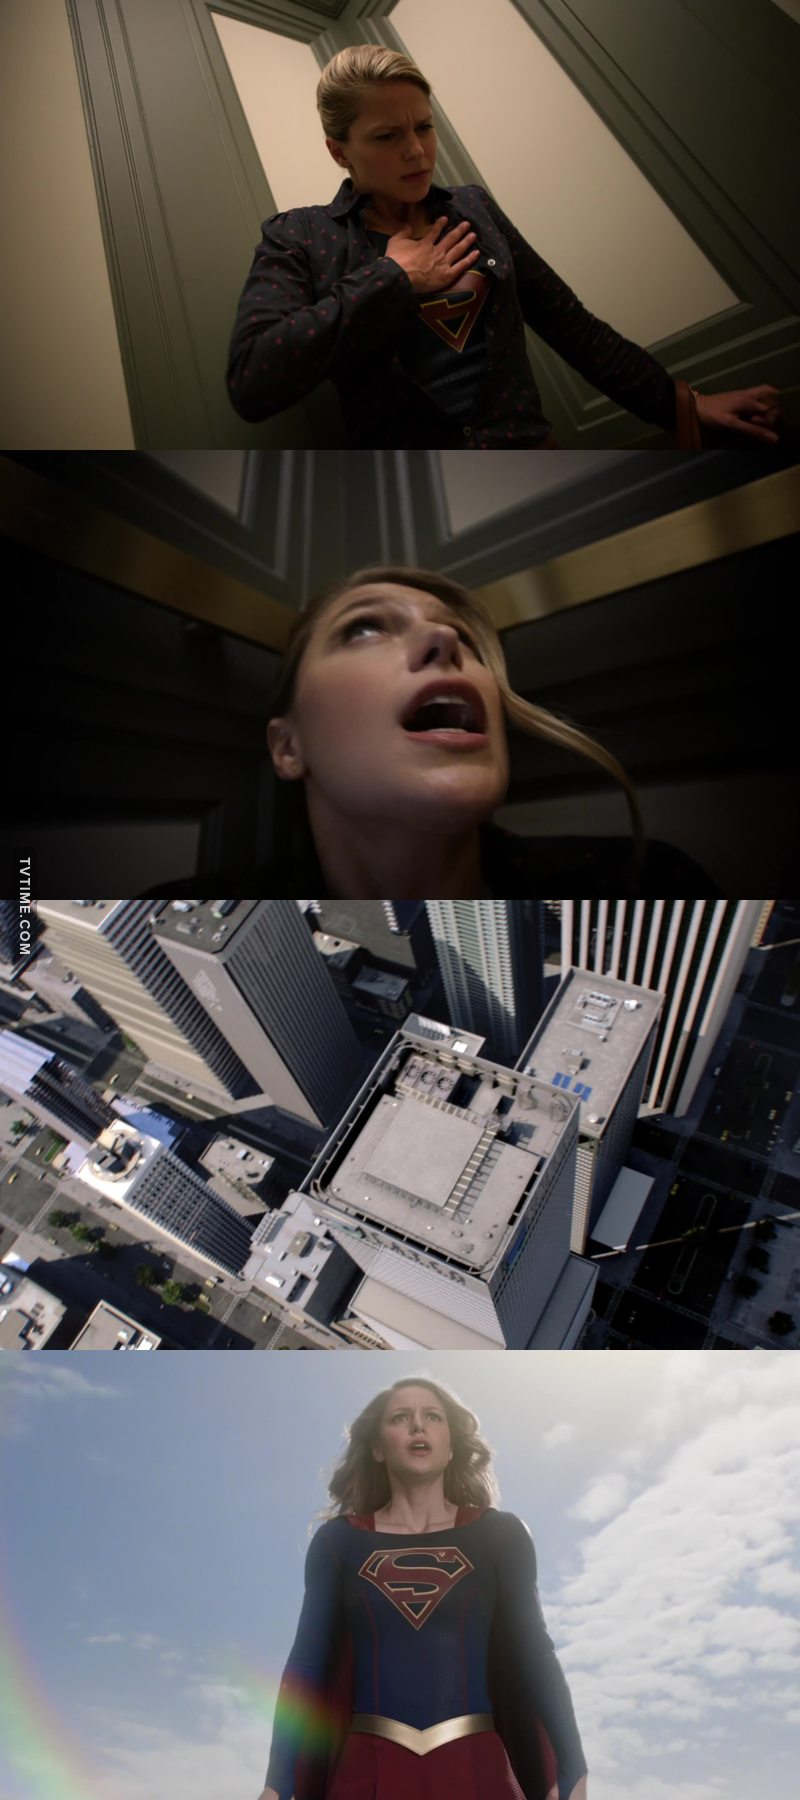 So what about the broken elevator and the whole in the roof???